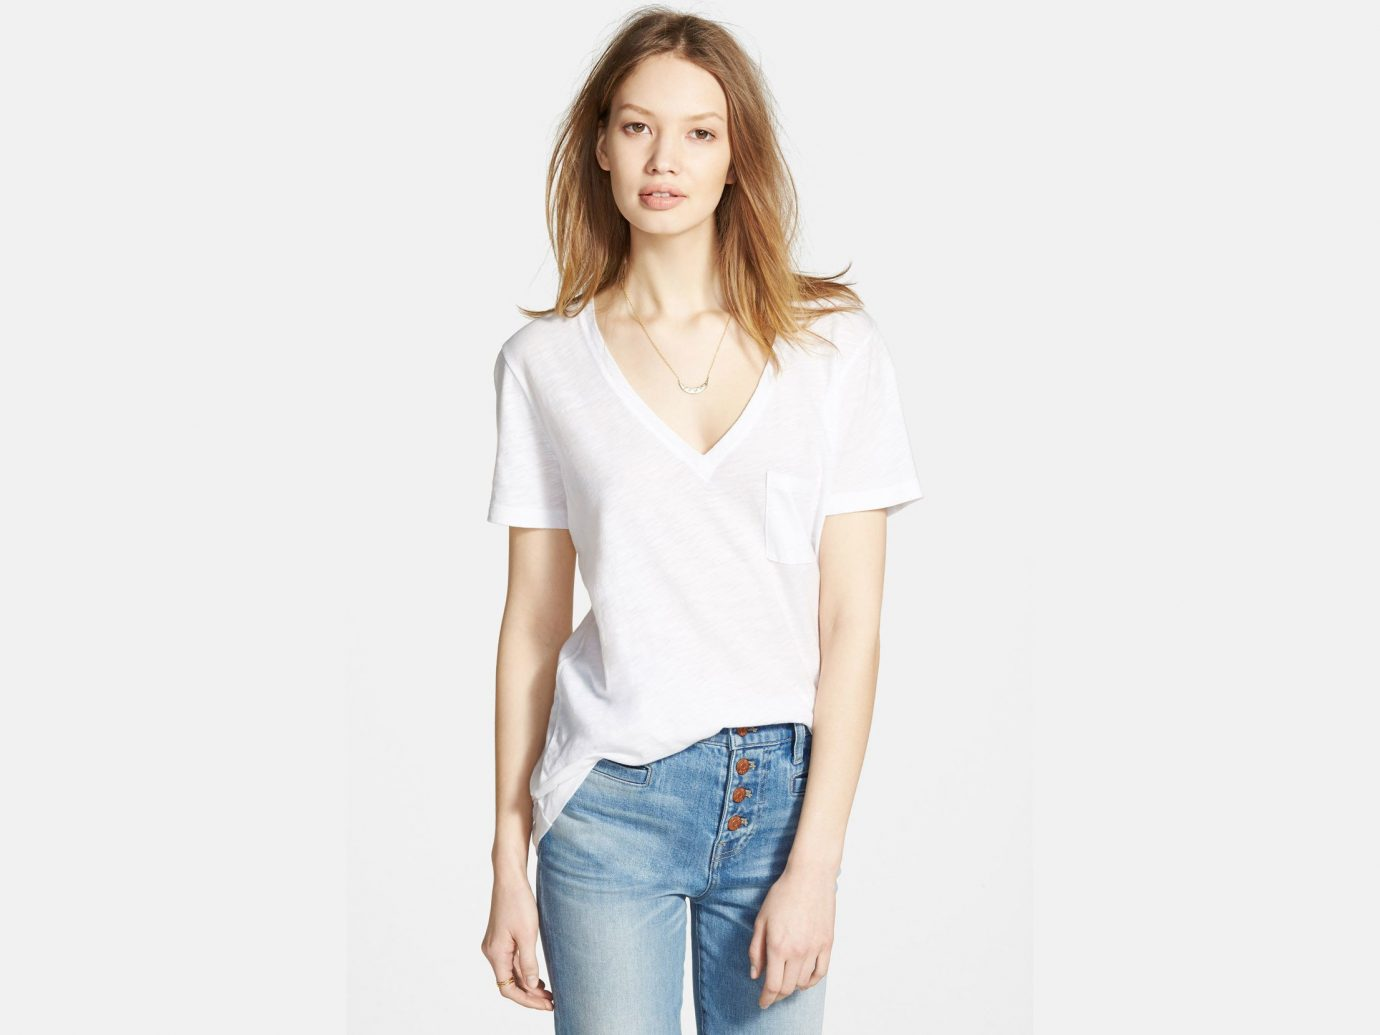 Style + Design Travel Shop person clothing sleeve fashion model shoulder neck joint supermodel posing blouse t shirt top one piece garment trouser